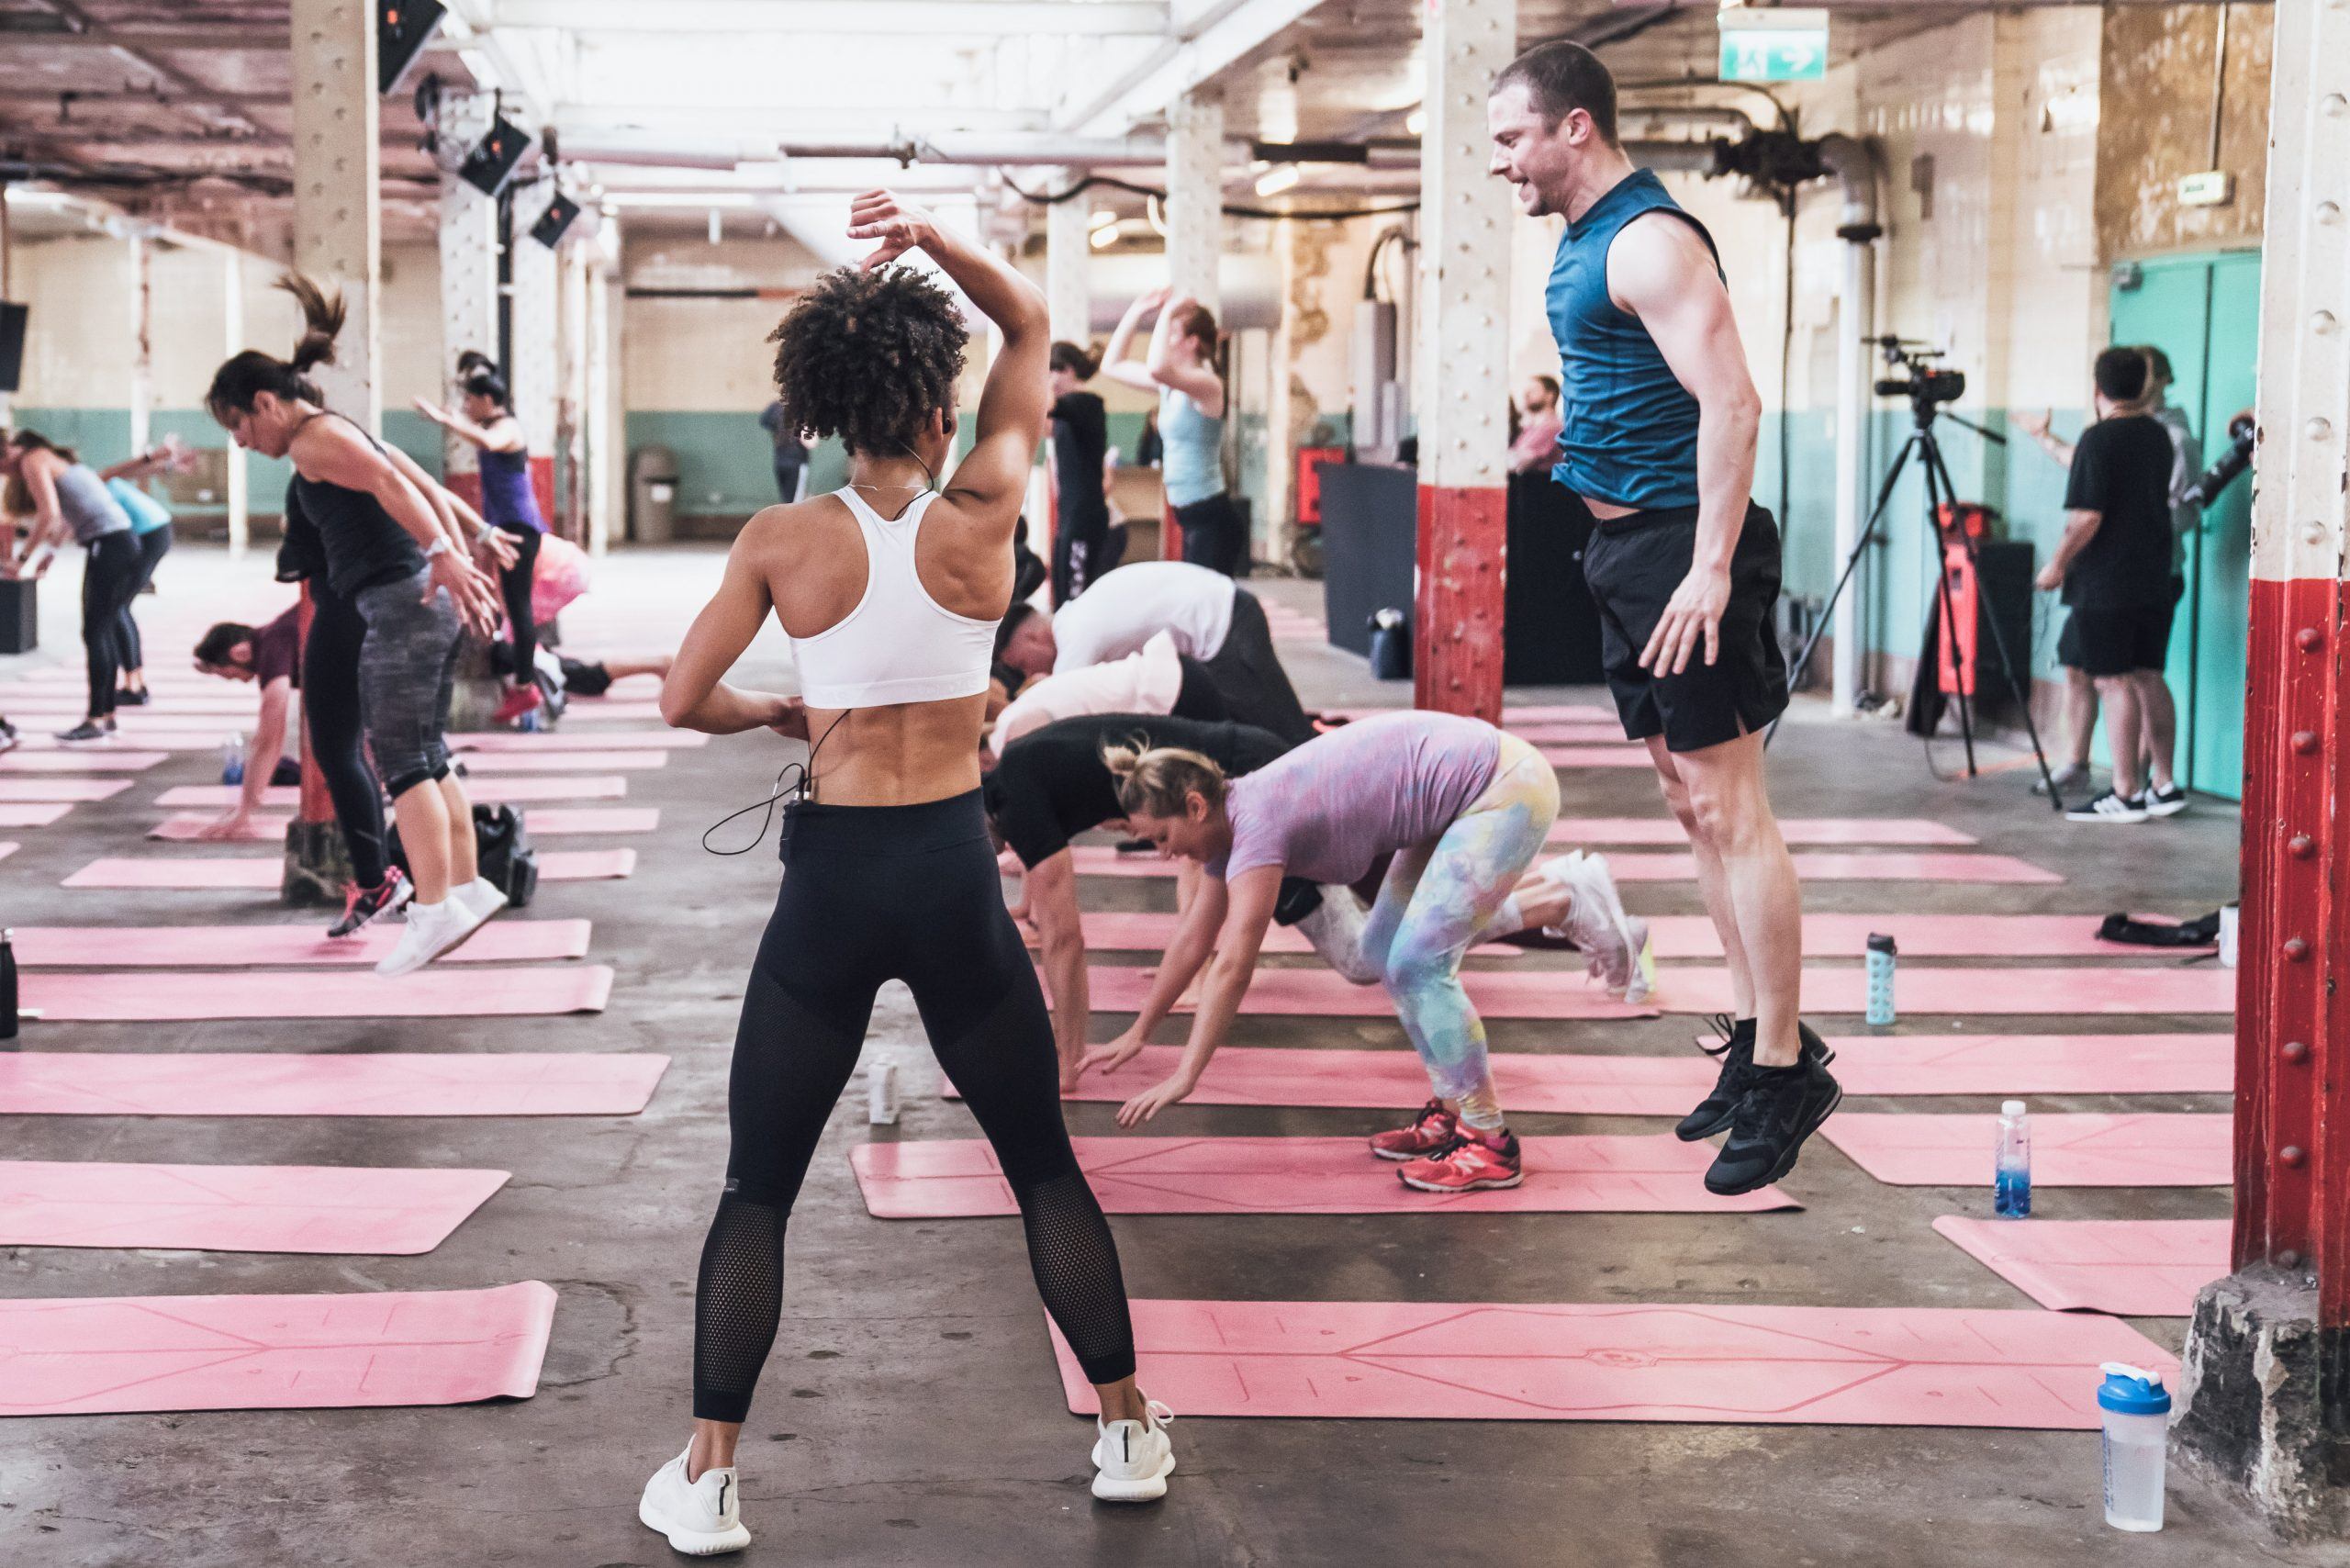 Balance Festival Returns To London With Expanded Lineup In Bid To Drive The Wellness Revolution